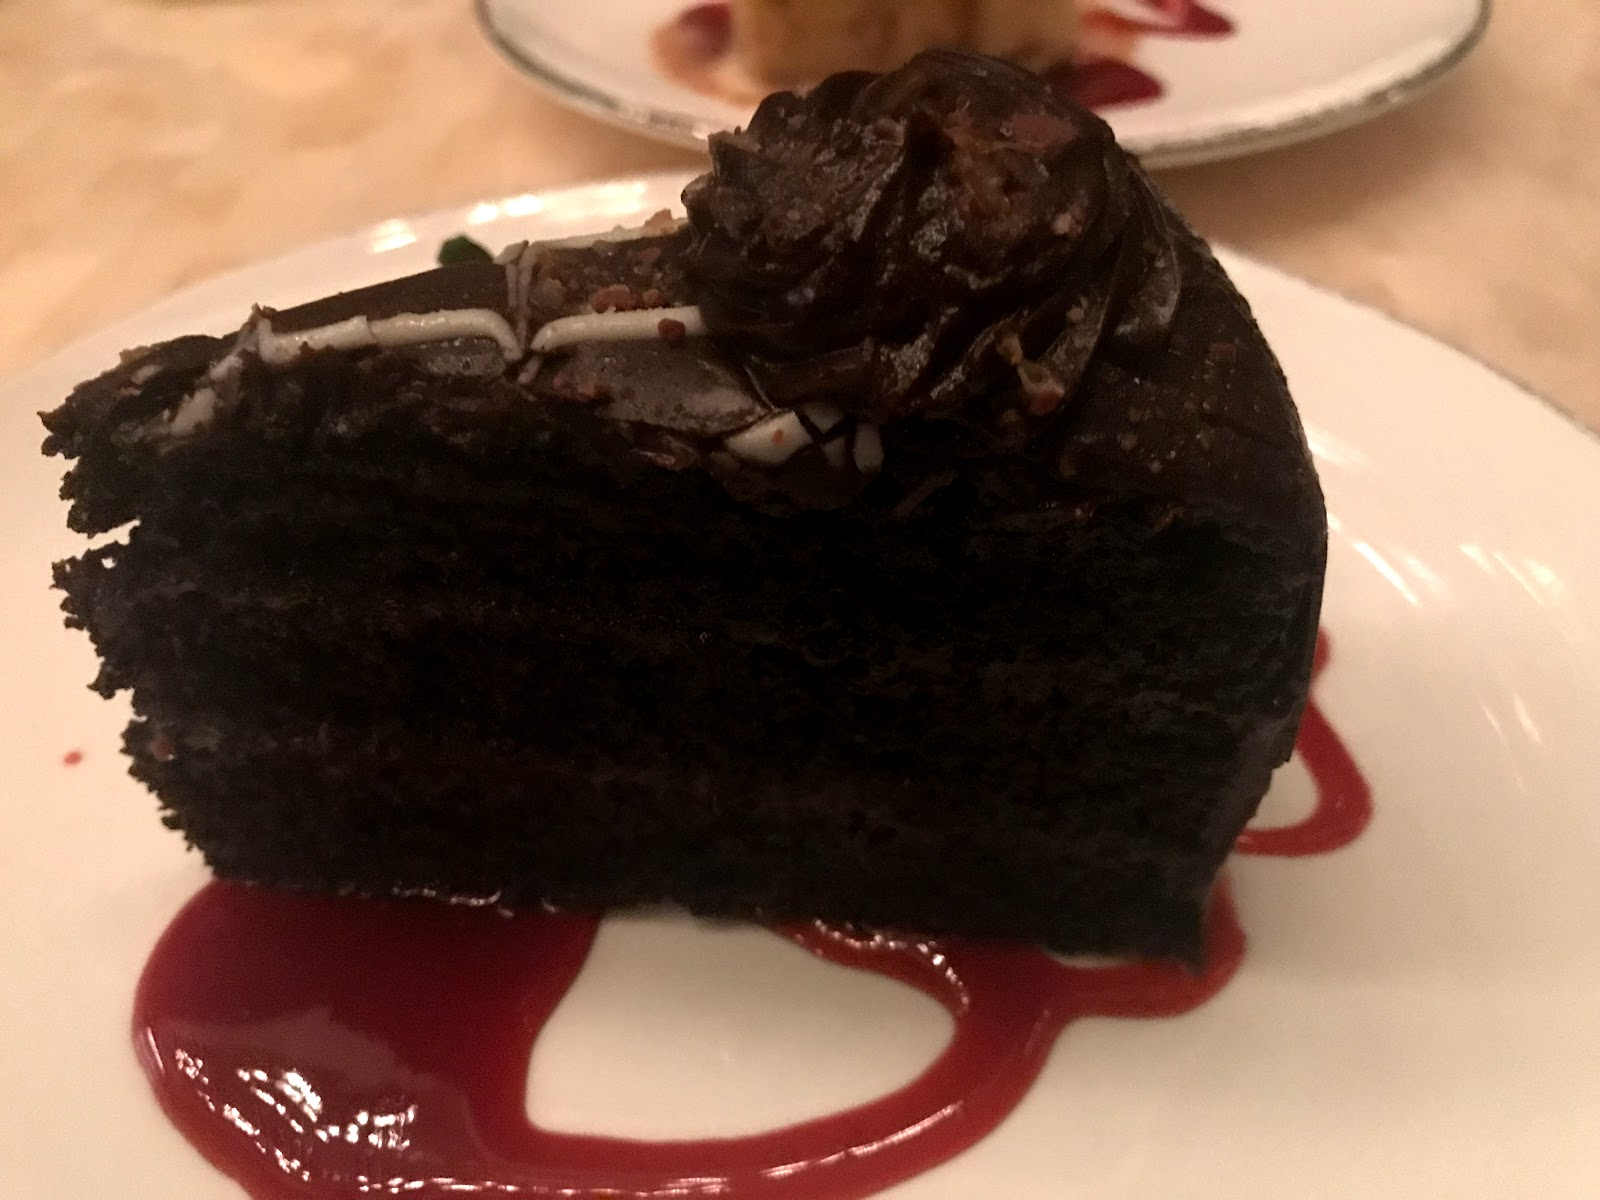 Image: Chocolate cake at Jimmy's Seafood and Steakhouse:We chose to eat and drink something a little light. But I was happy with my decision, after ordering a chocolate ganache cake.